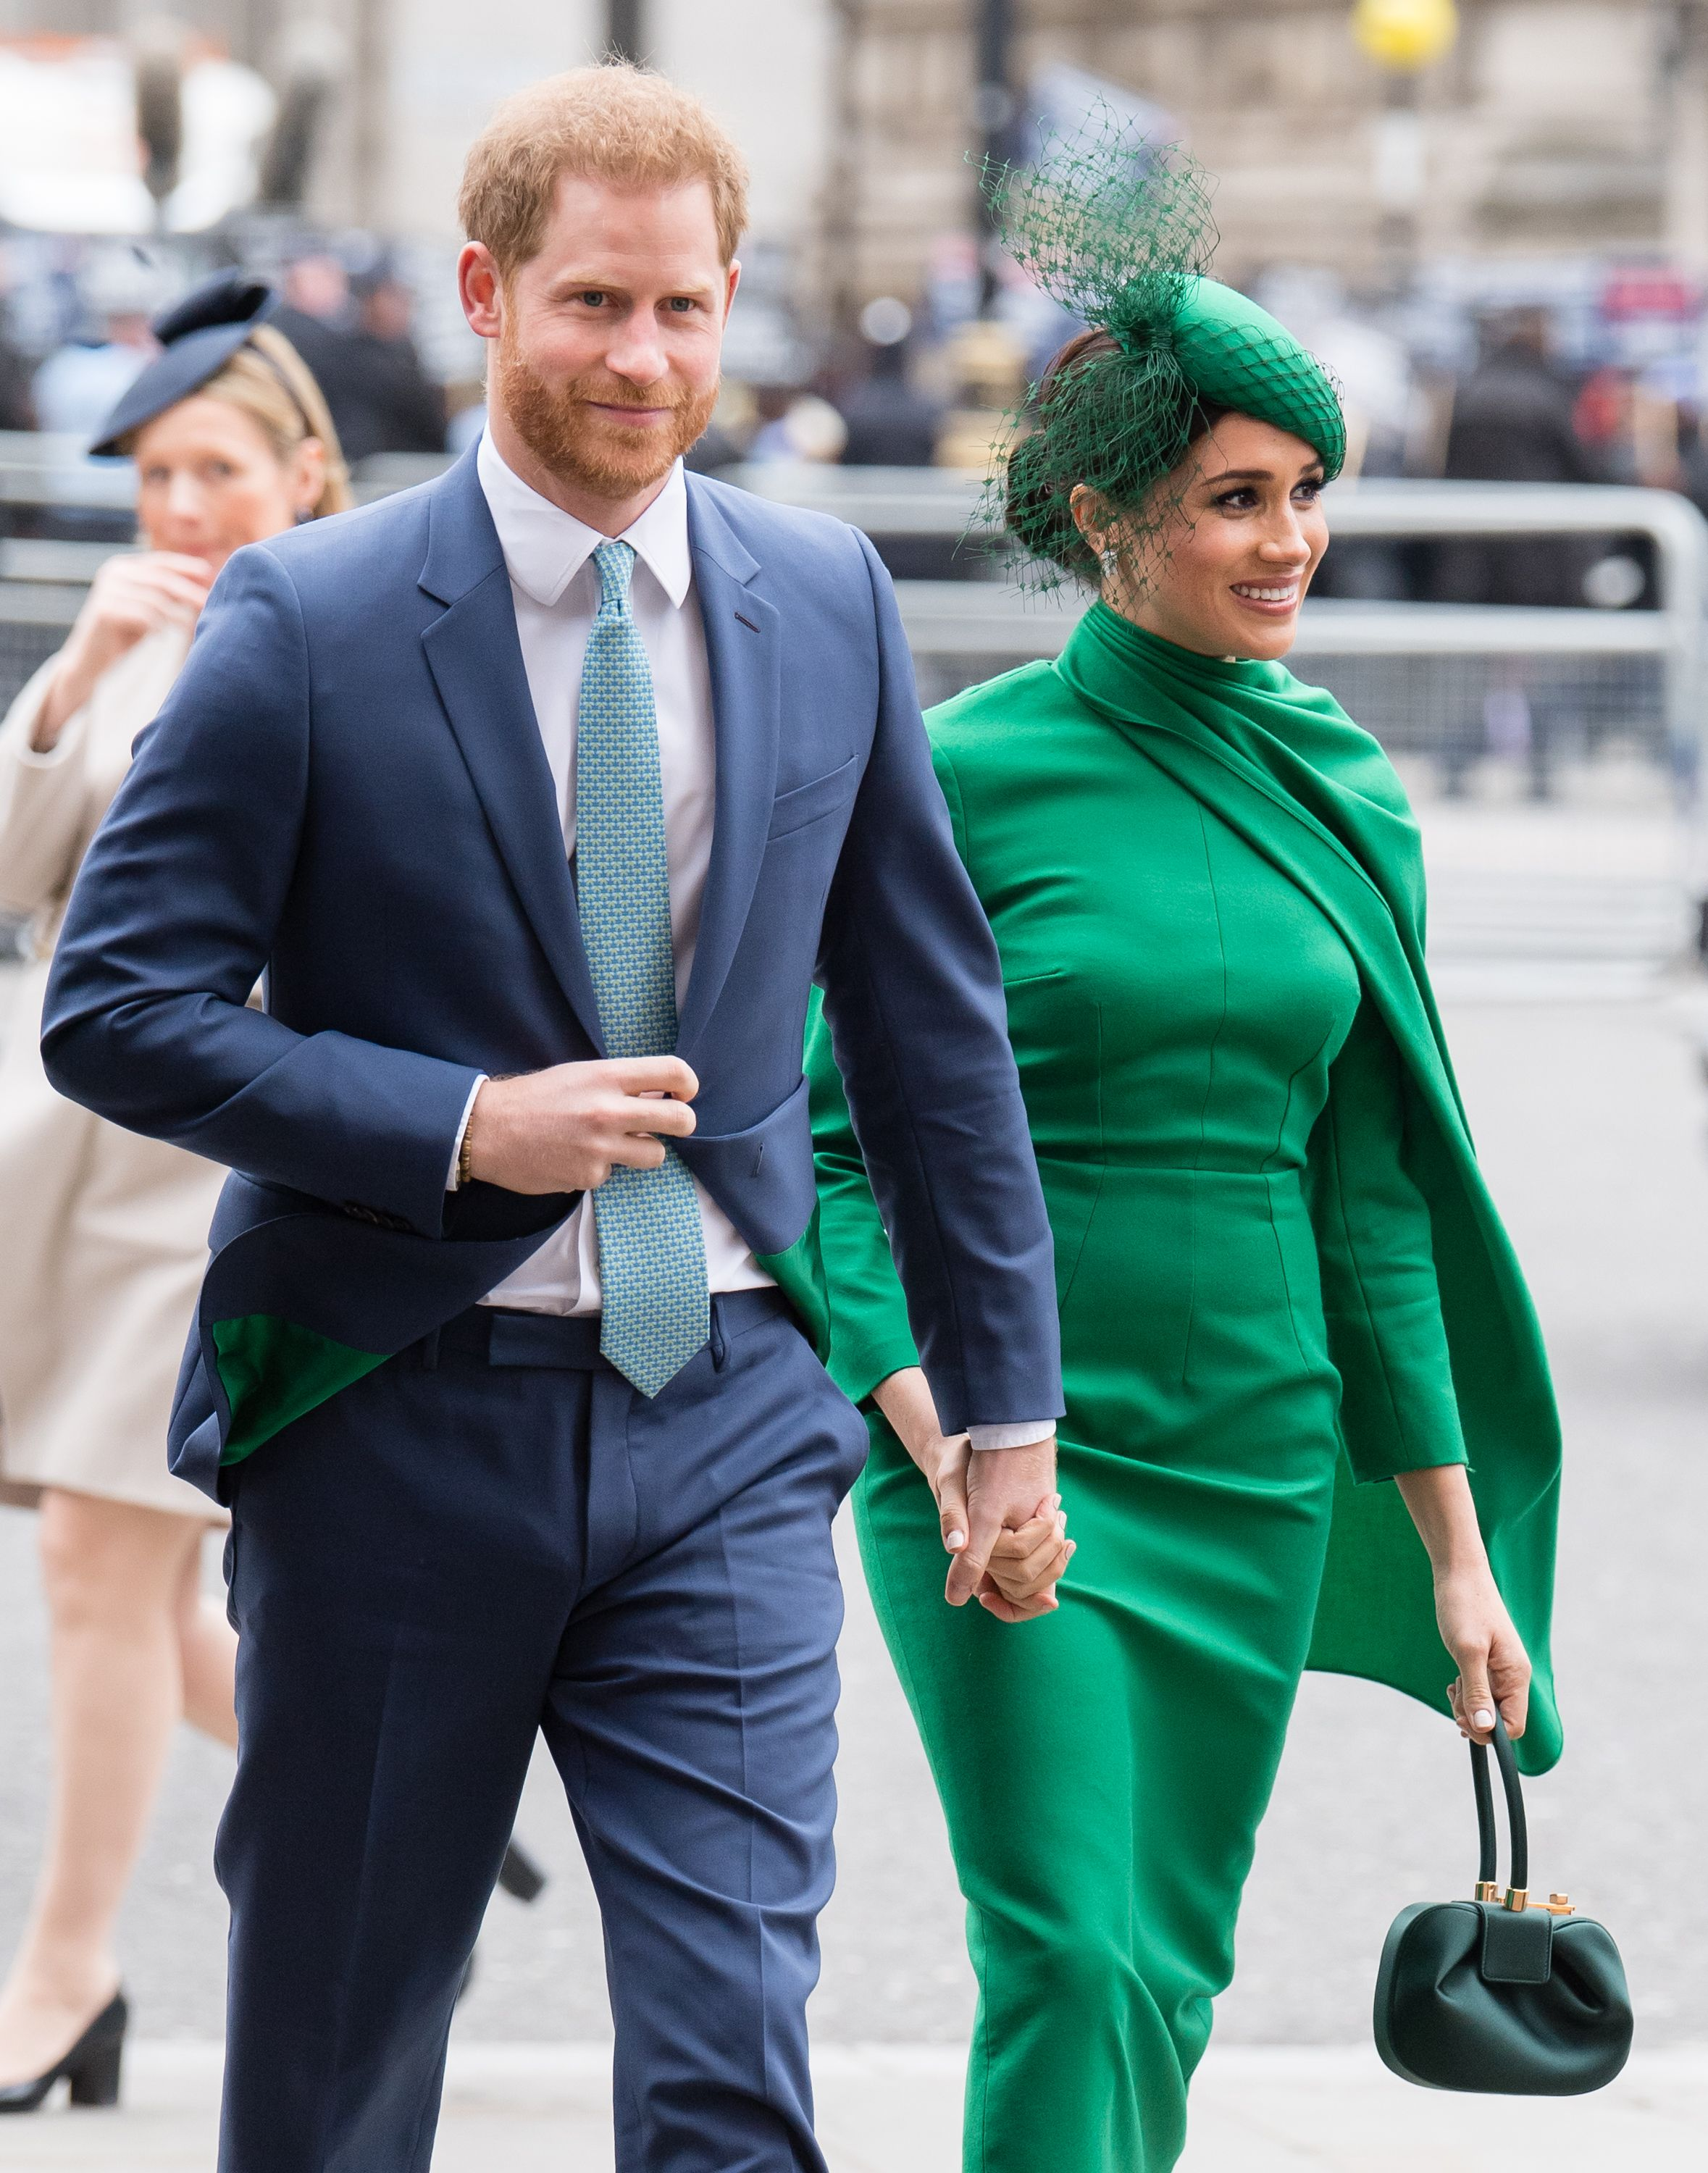 Prince Harry and Duchess Meghan at the Commonwealth Day Service on March 09, 2020, in London, England | Photo: Samir Hussein/WireImage/Getty Images